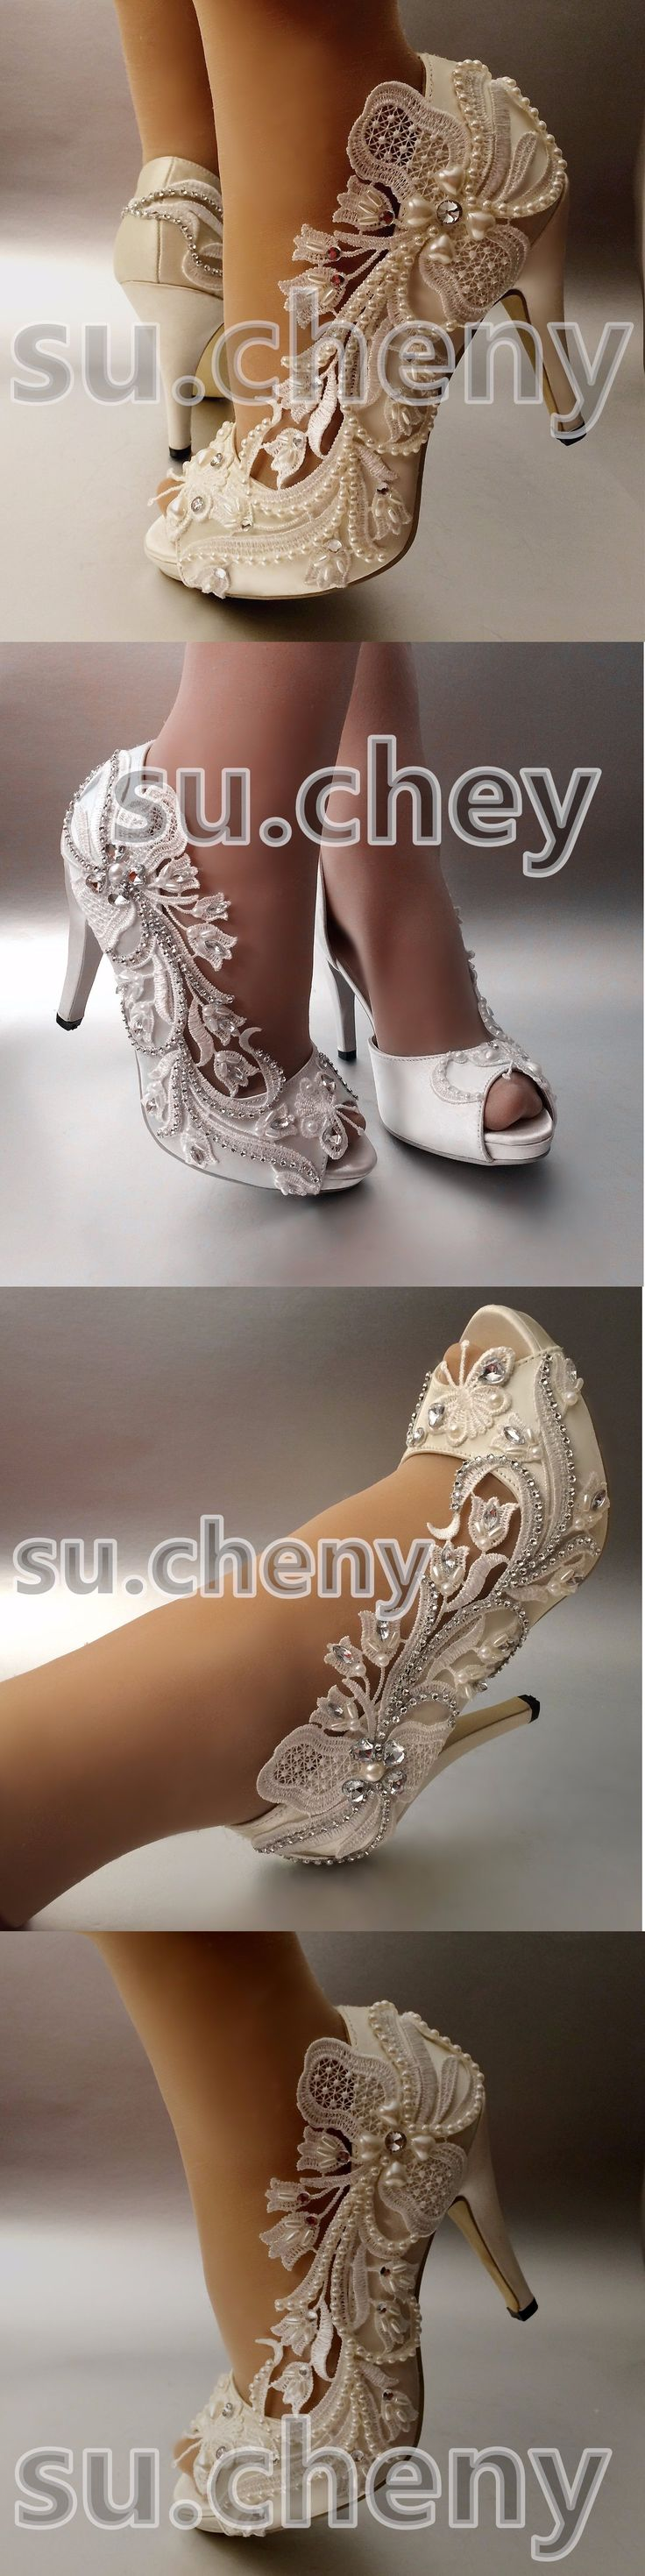 Wedding Shoes And Bridal Shoes: 34 Heel Satin White Ivory Lace Bell Flower Peep Toe Wedding Shoes Size 5-9.5 BUY IT NOW ONLY: $59.99